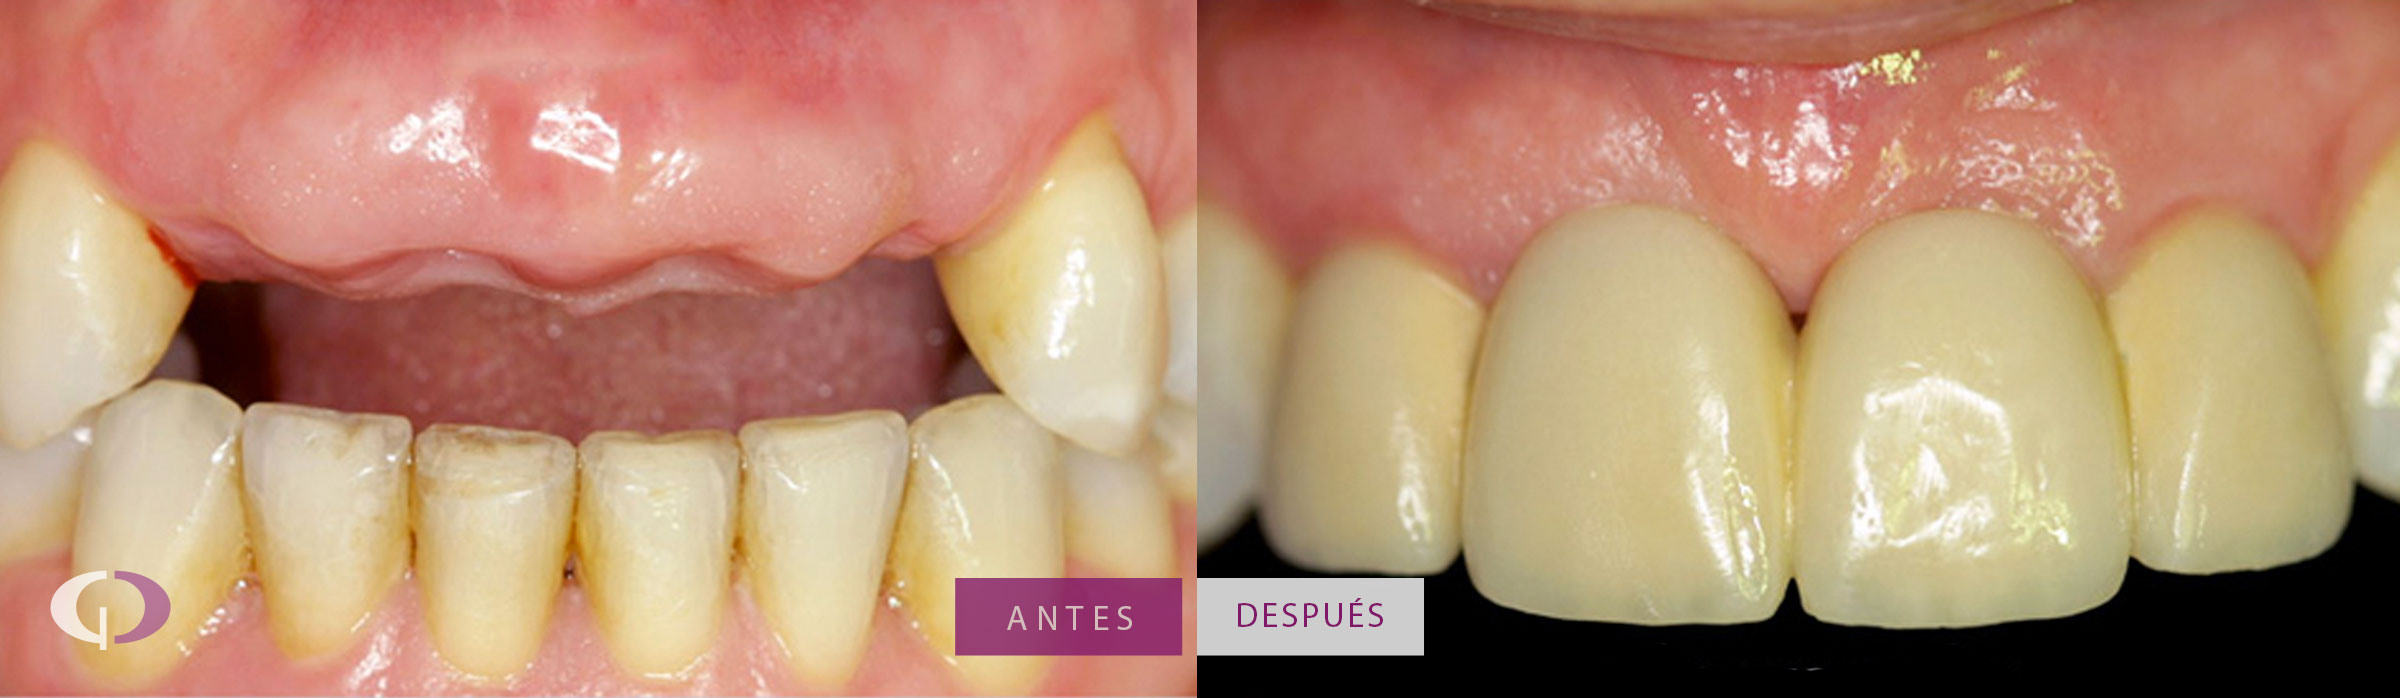 Antes y después Implantes Dentales